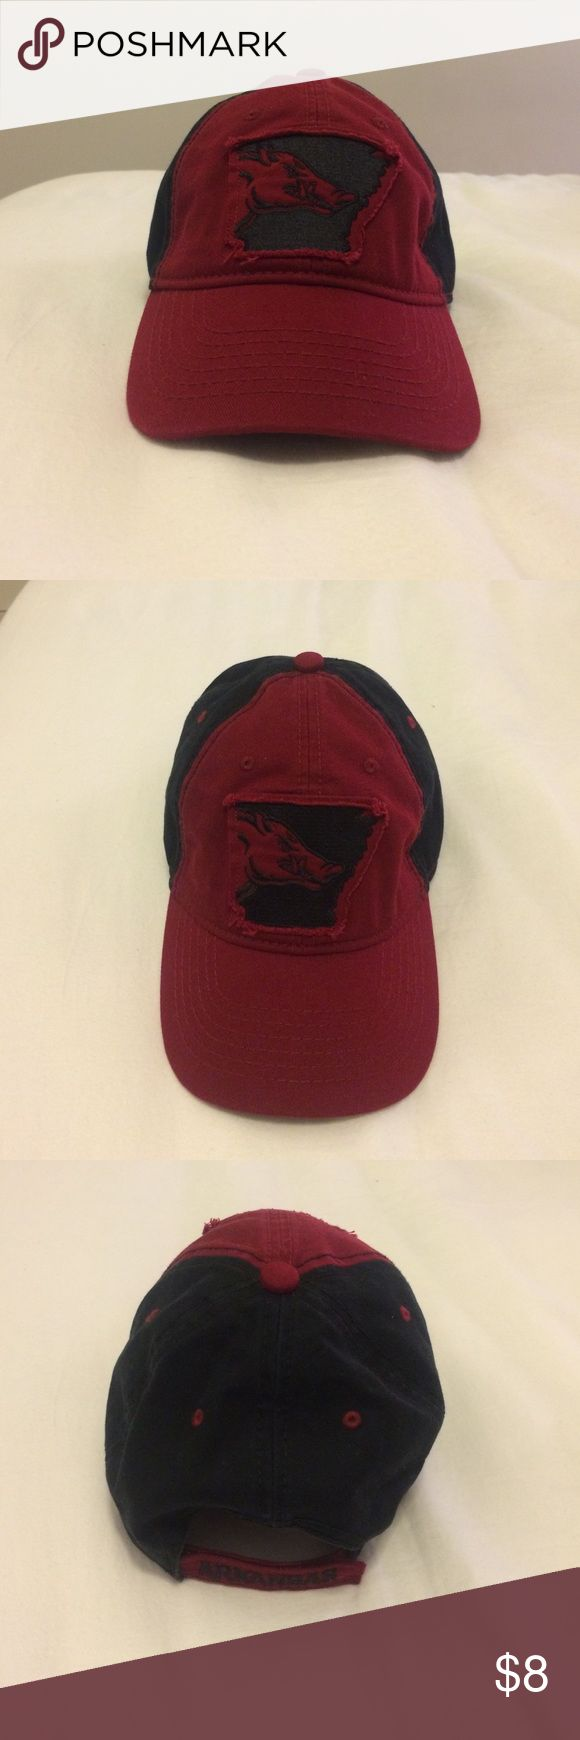 Arkansas Razorback hat Black and red Arkansas Razorback baseball cap. Perfect for game days! Never worn! Accessories Hats